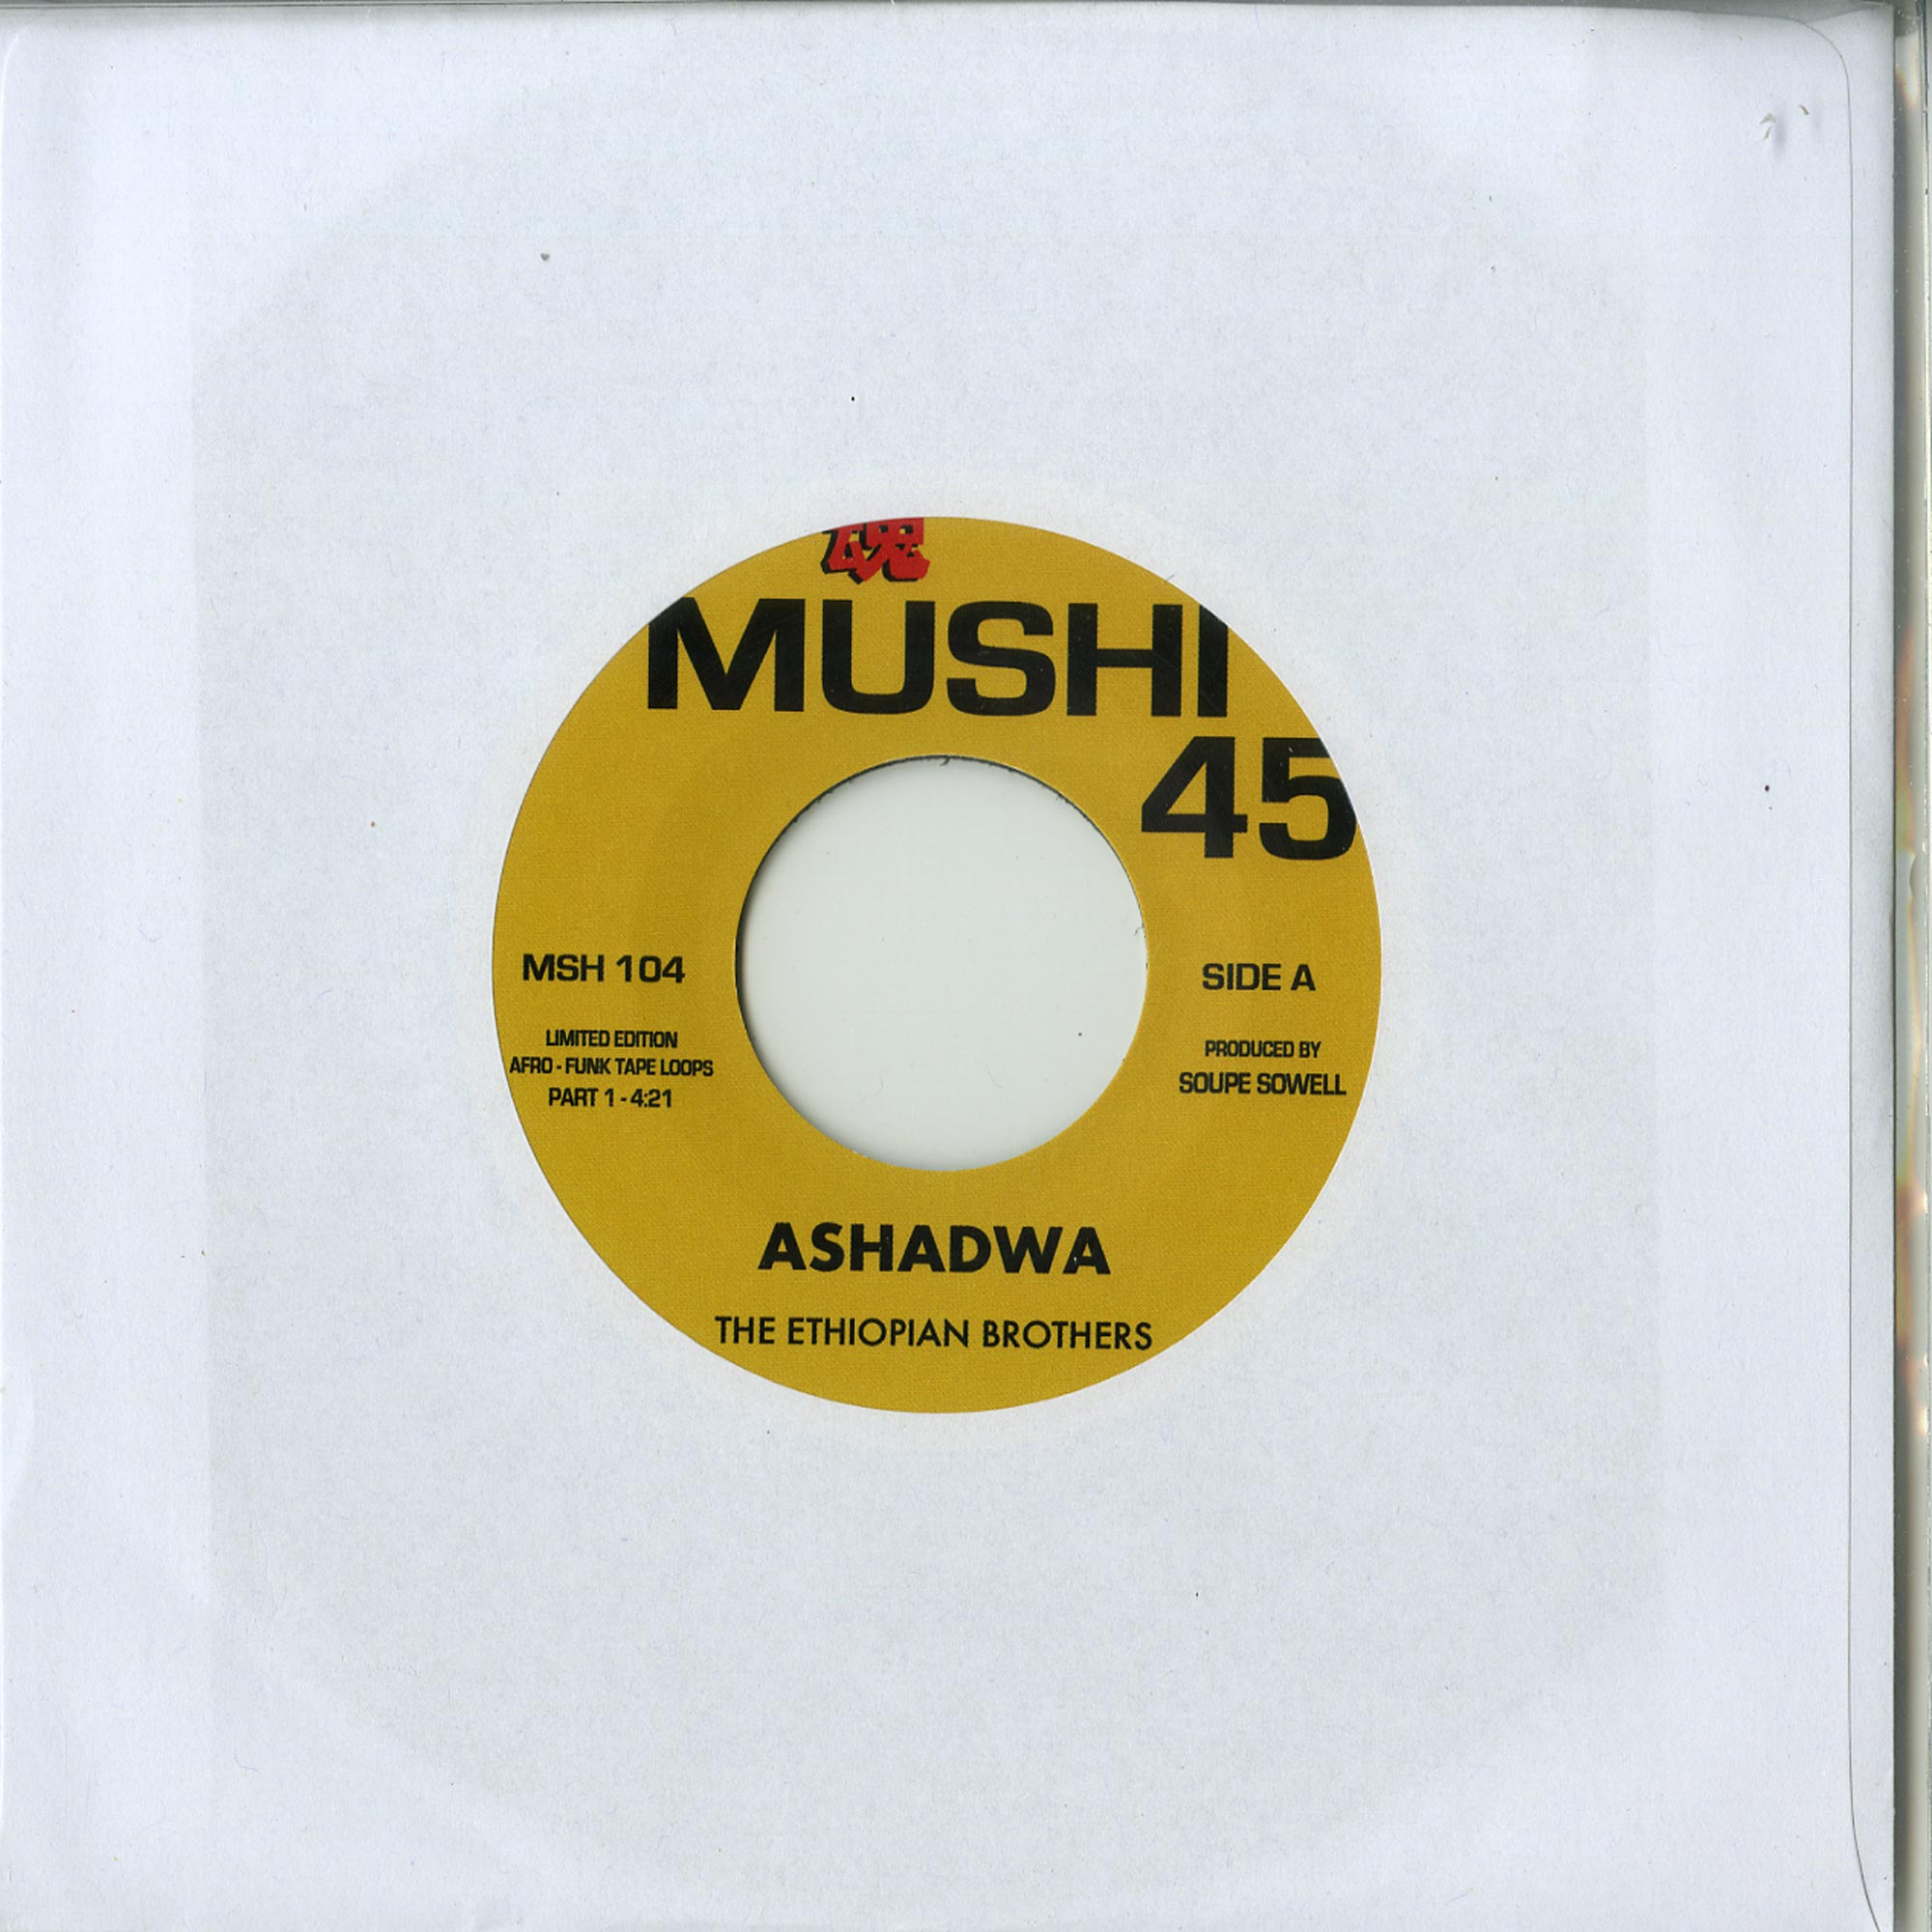 The Ethiopian Brothers - ASHADWA - PART 1